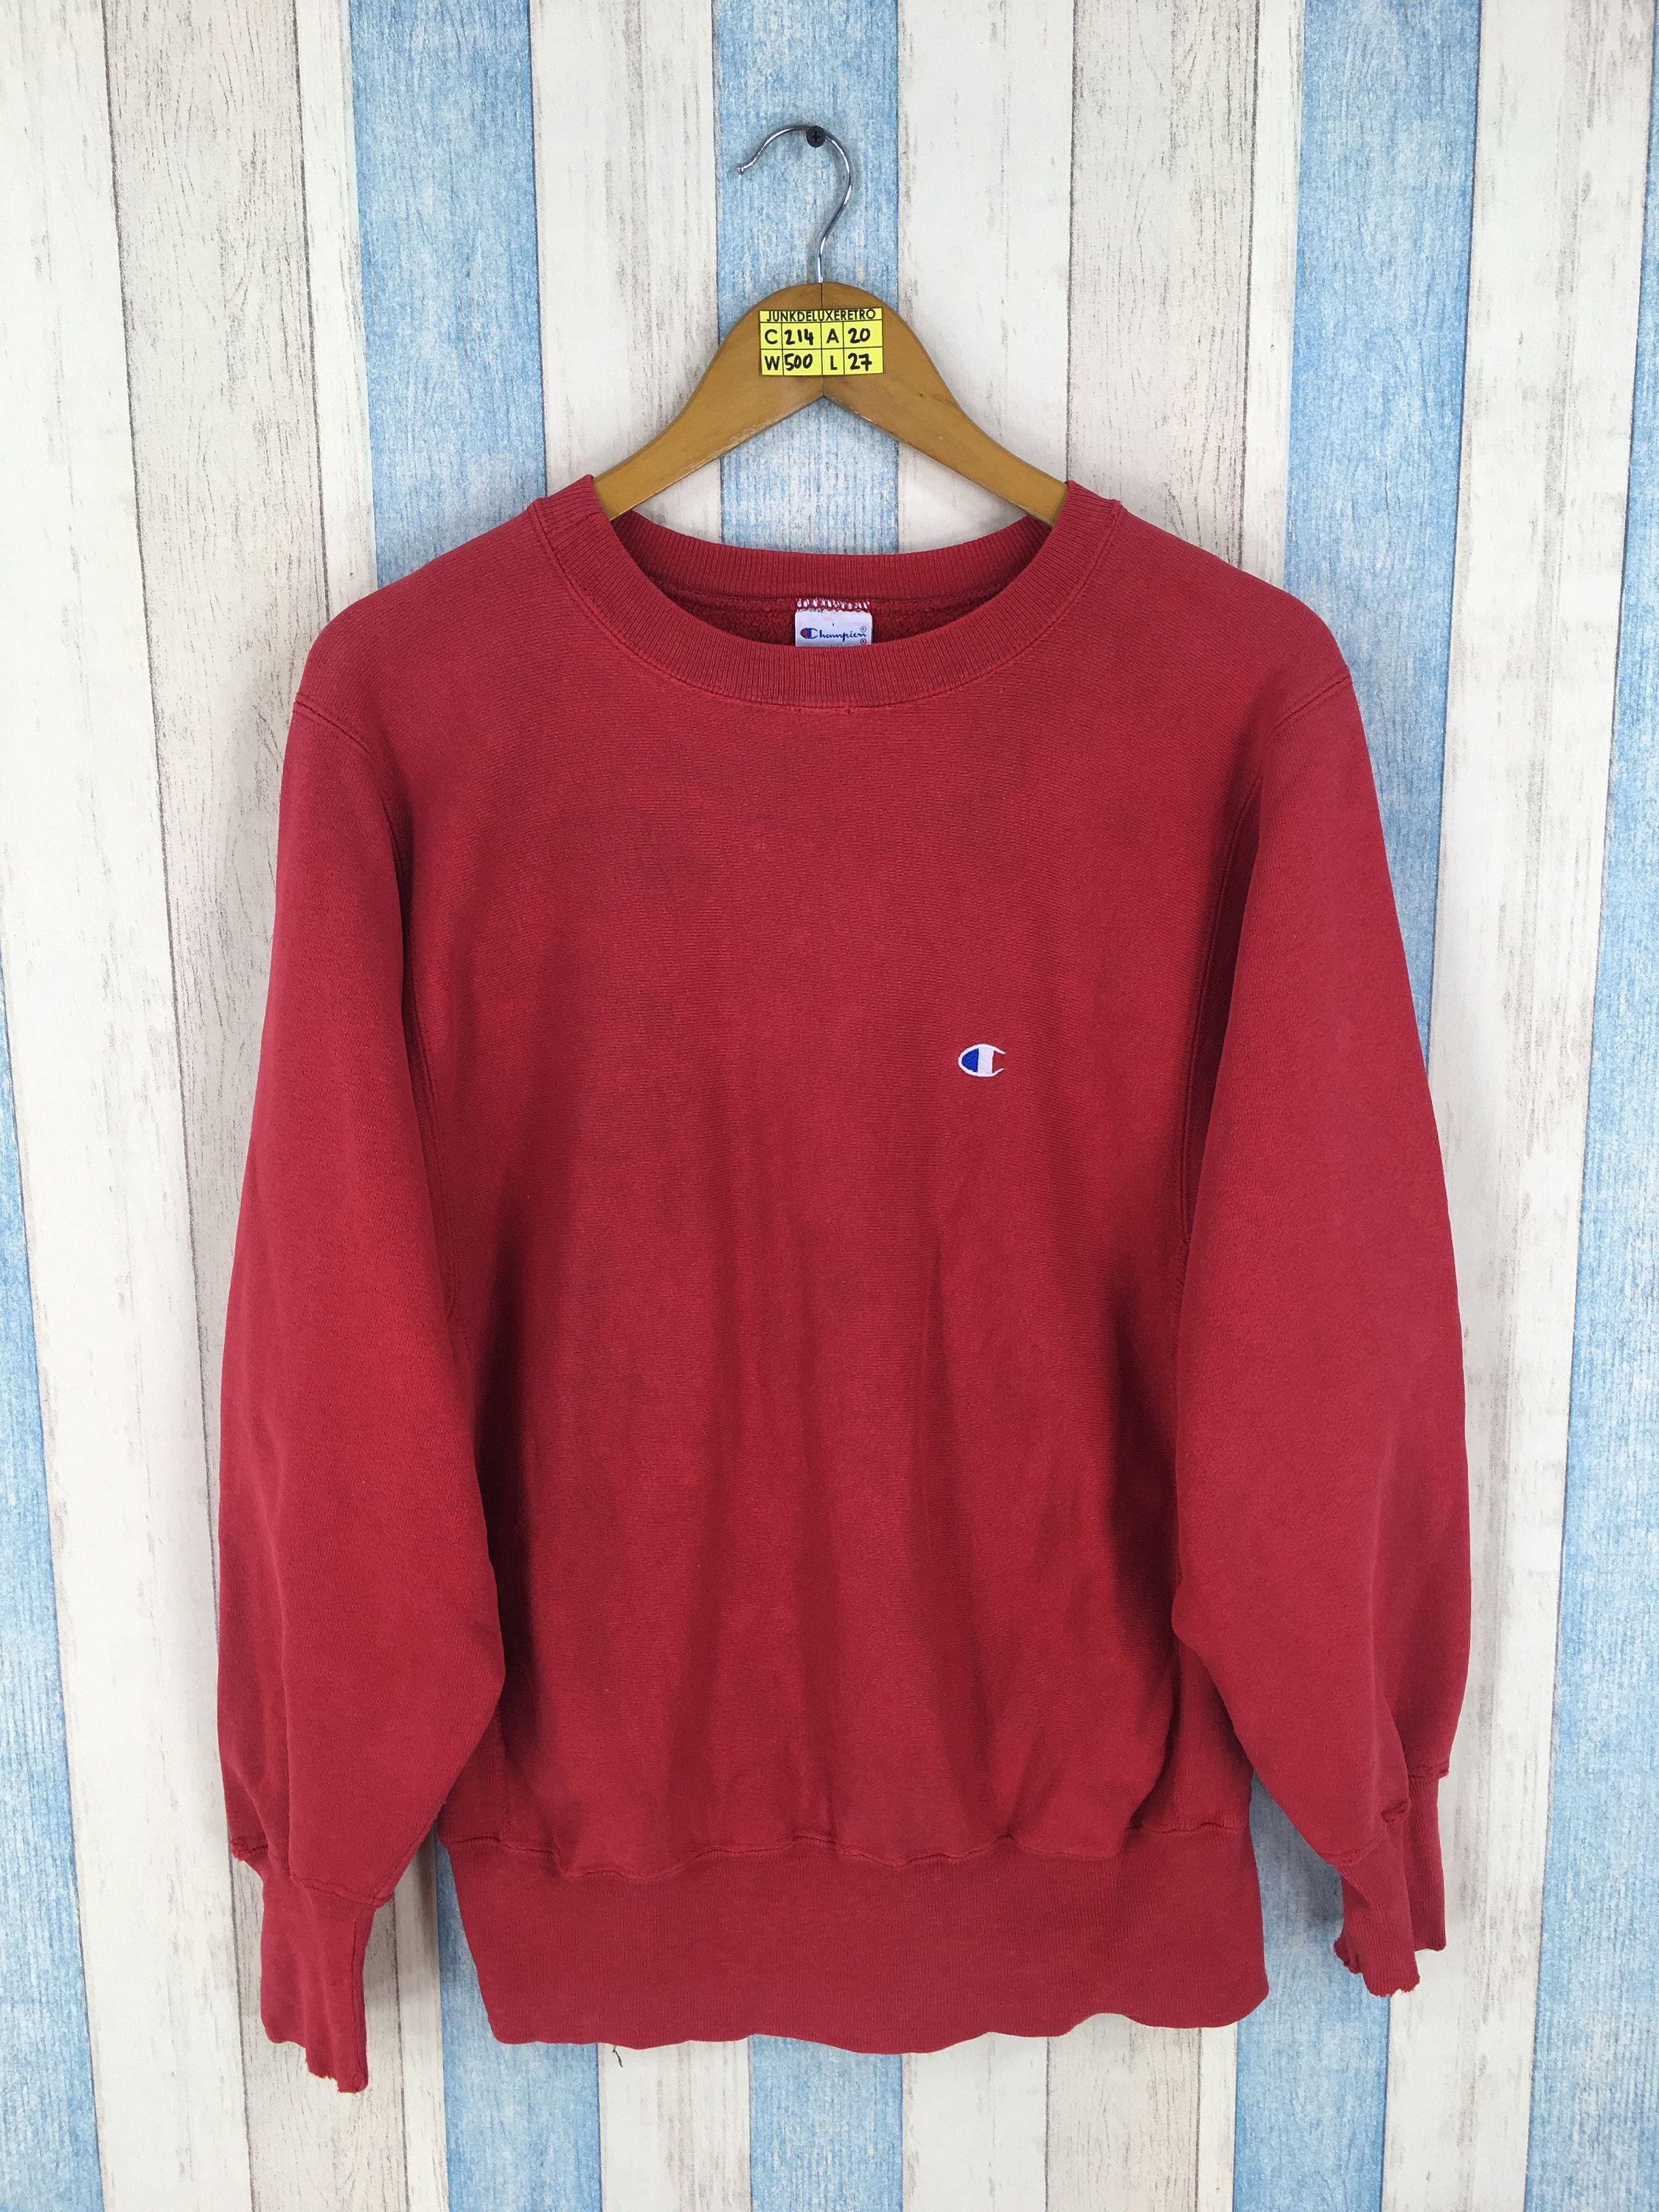 Vintage 80\u0027s CHAMPION Reverse Weave Sweatshirt Medium